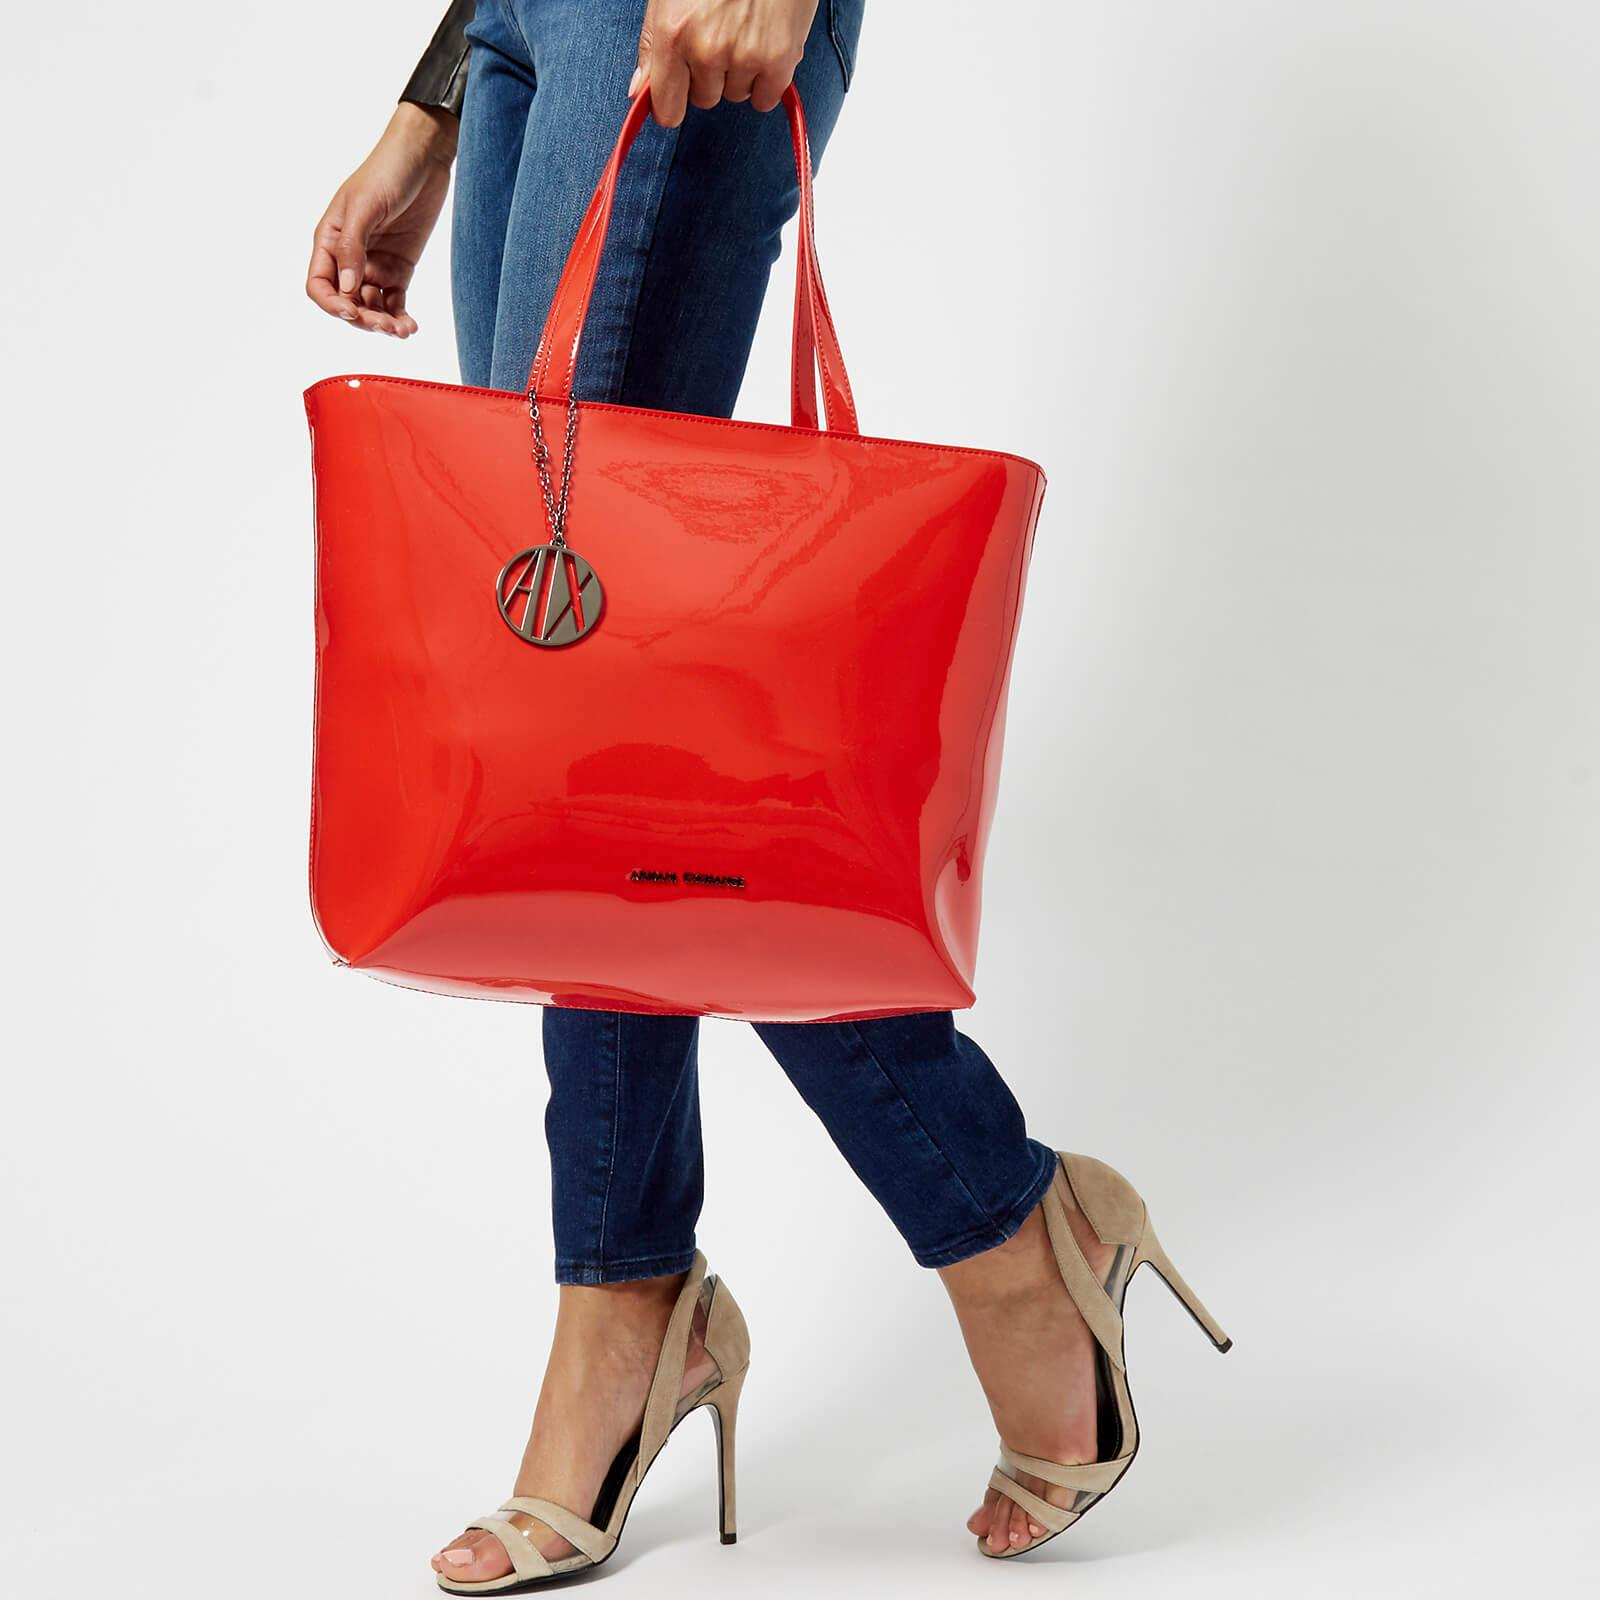 316efa08d864 Armani Exchange Patent Logo Charm Tote in Red - Lyst